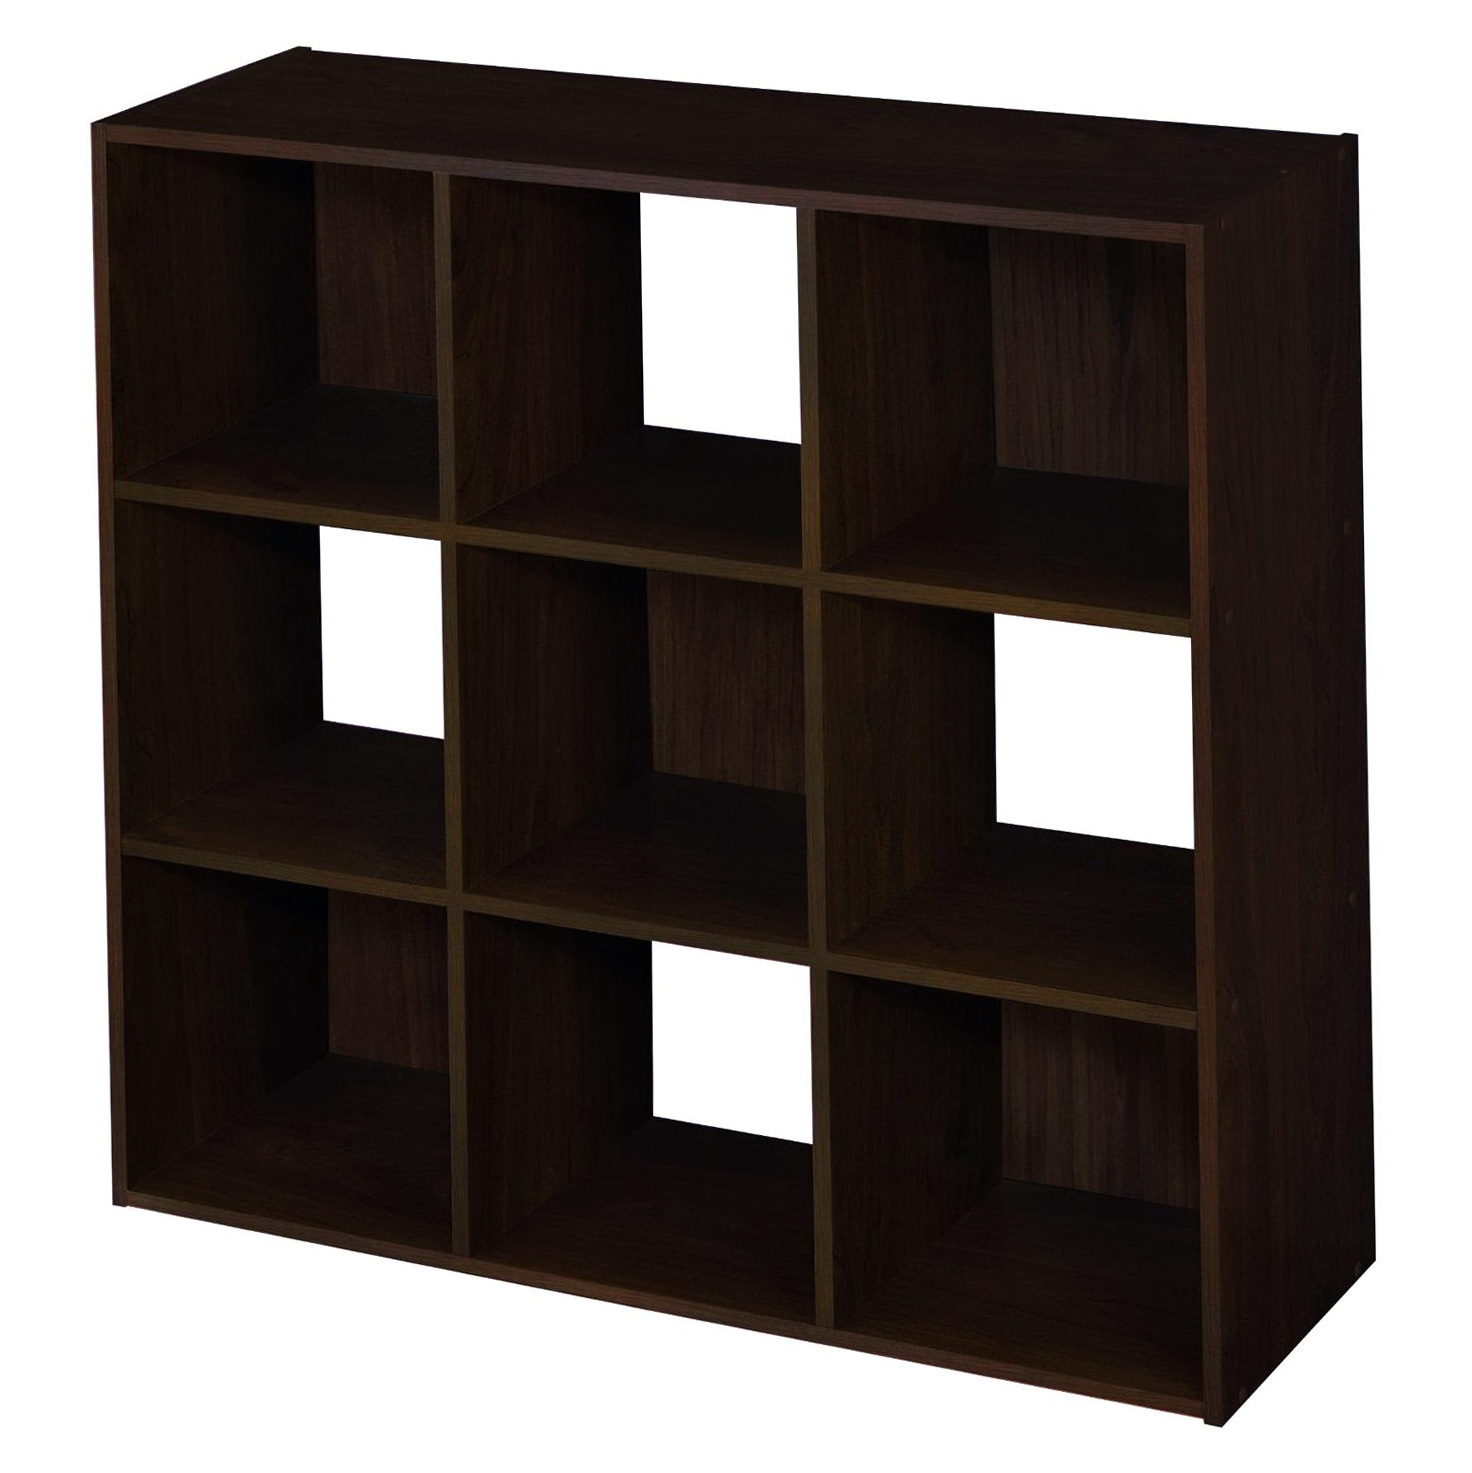 lowes closetmaid under closet full bins wire baskets of storage drawers maid shelf mountable ikea basket size shelves